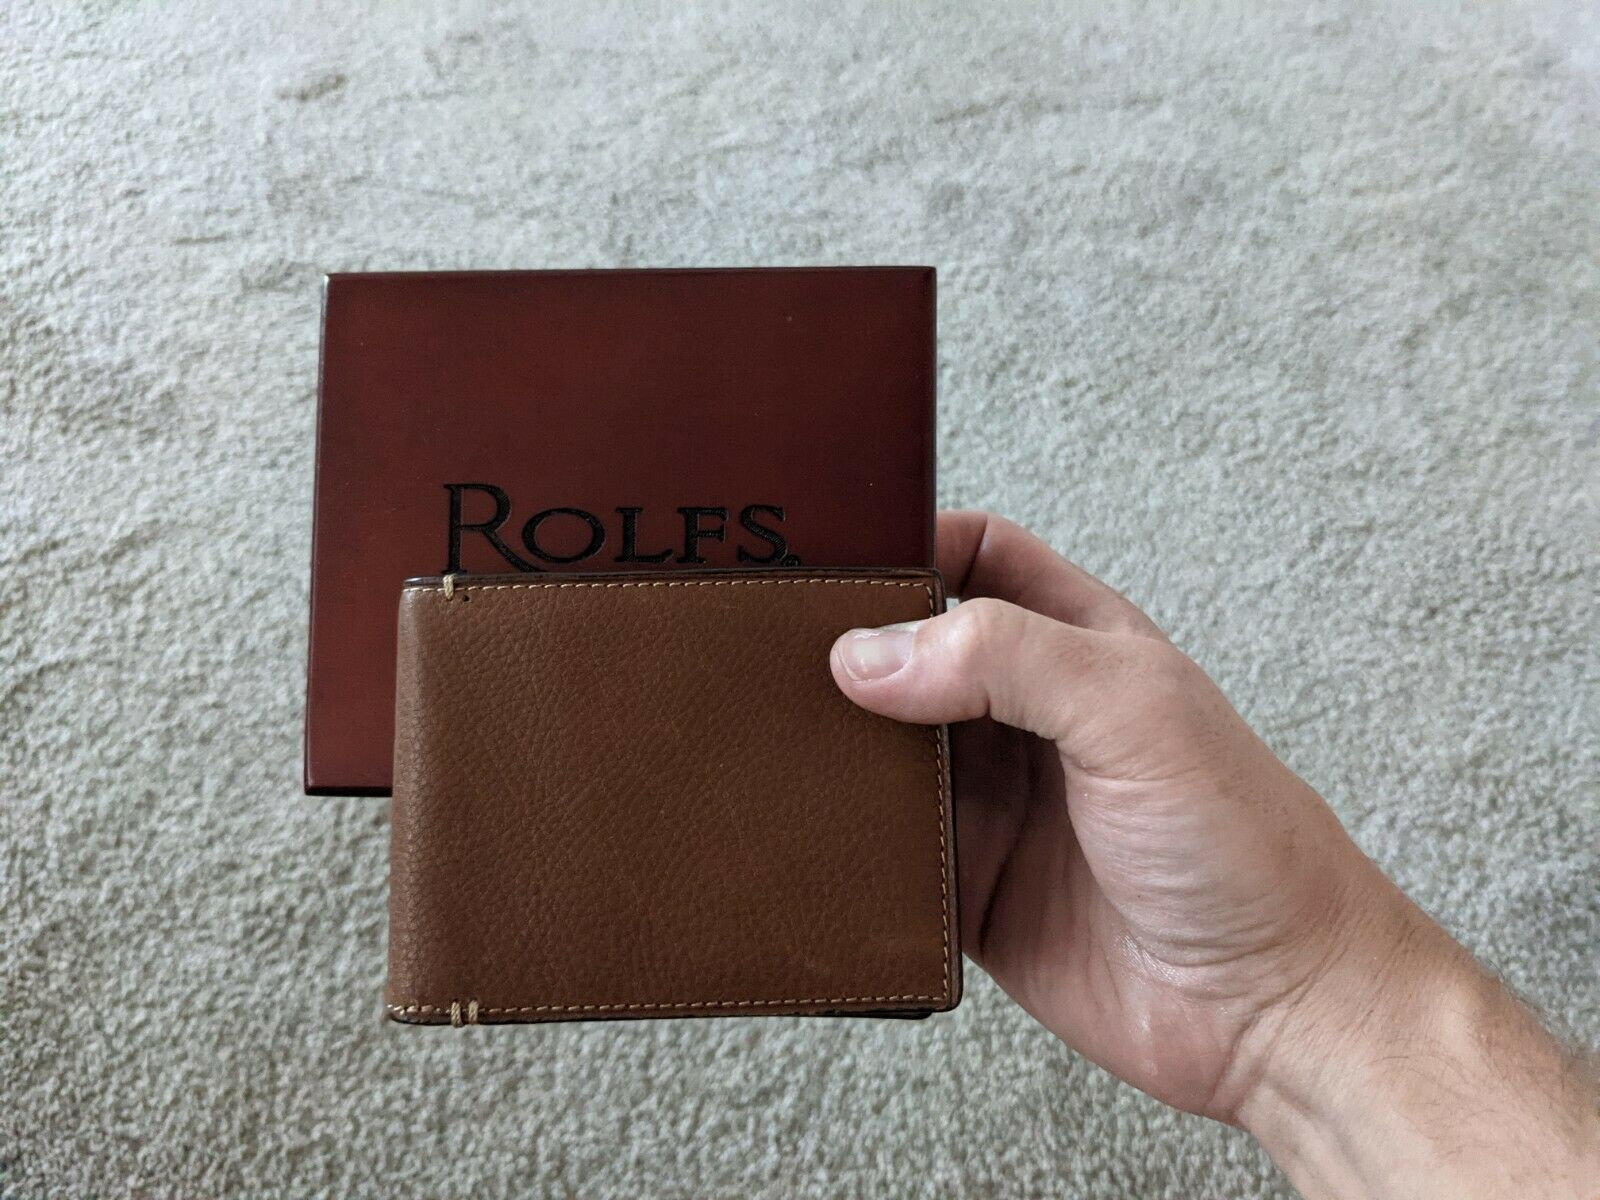 Rolf's Leather Wallet (New)